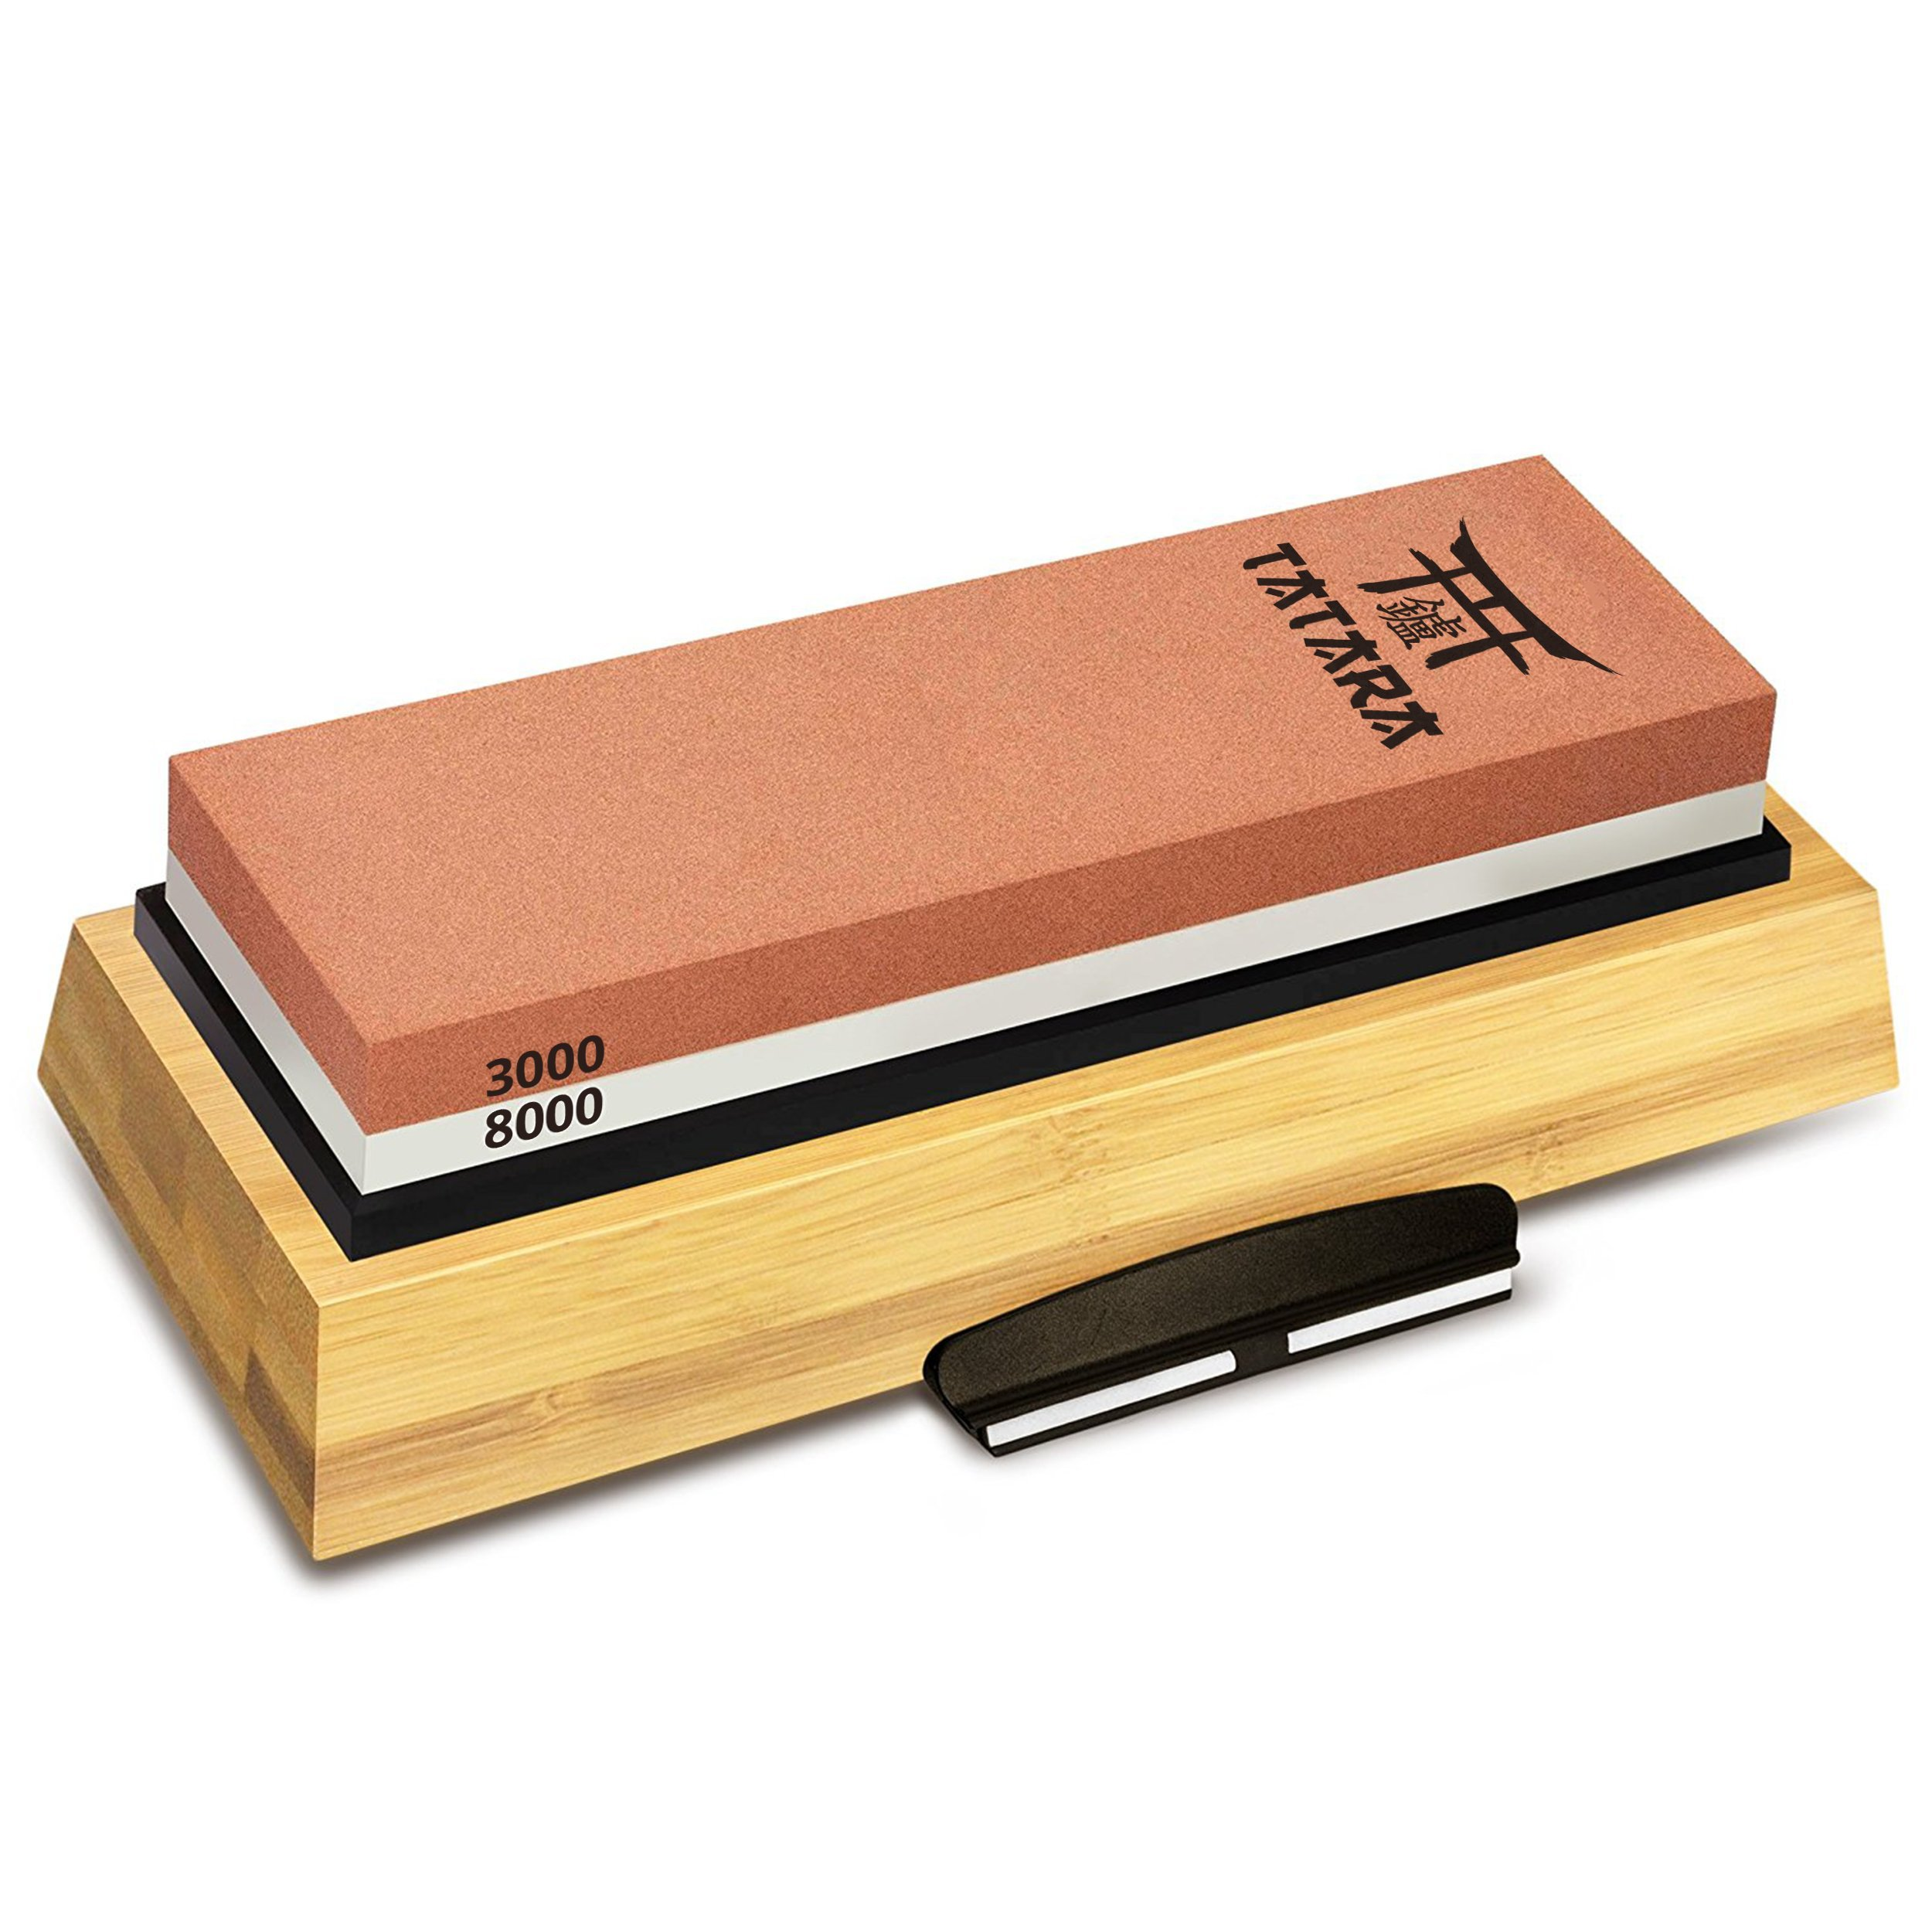 Tatara Sharpening Stone 3000 & 8000 Grit - Double Sided Japanese Whetstone Set For Knives - Axe Sword & Chisel Sharpener with Non-Slip Bamboo Base and Free Honing Angle Guide